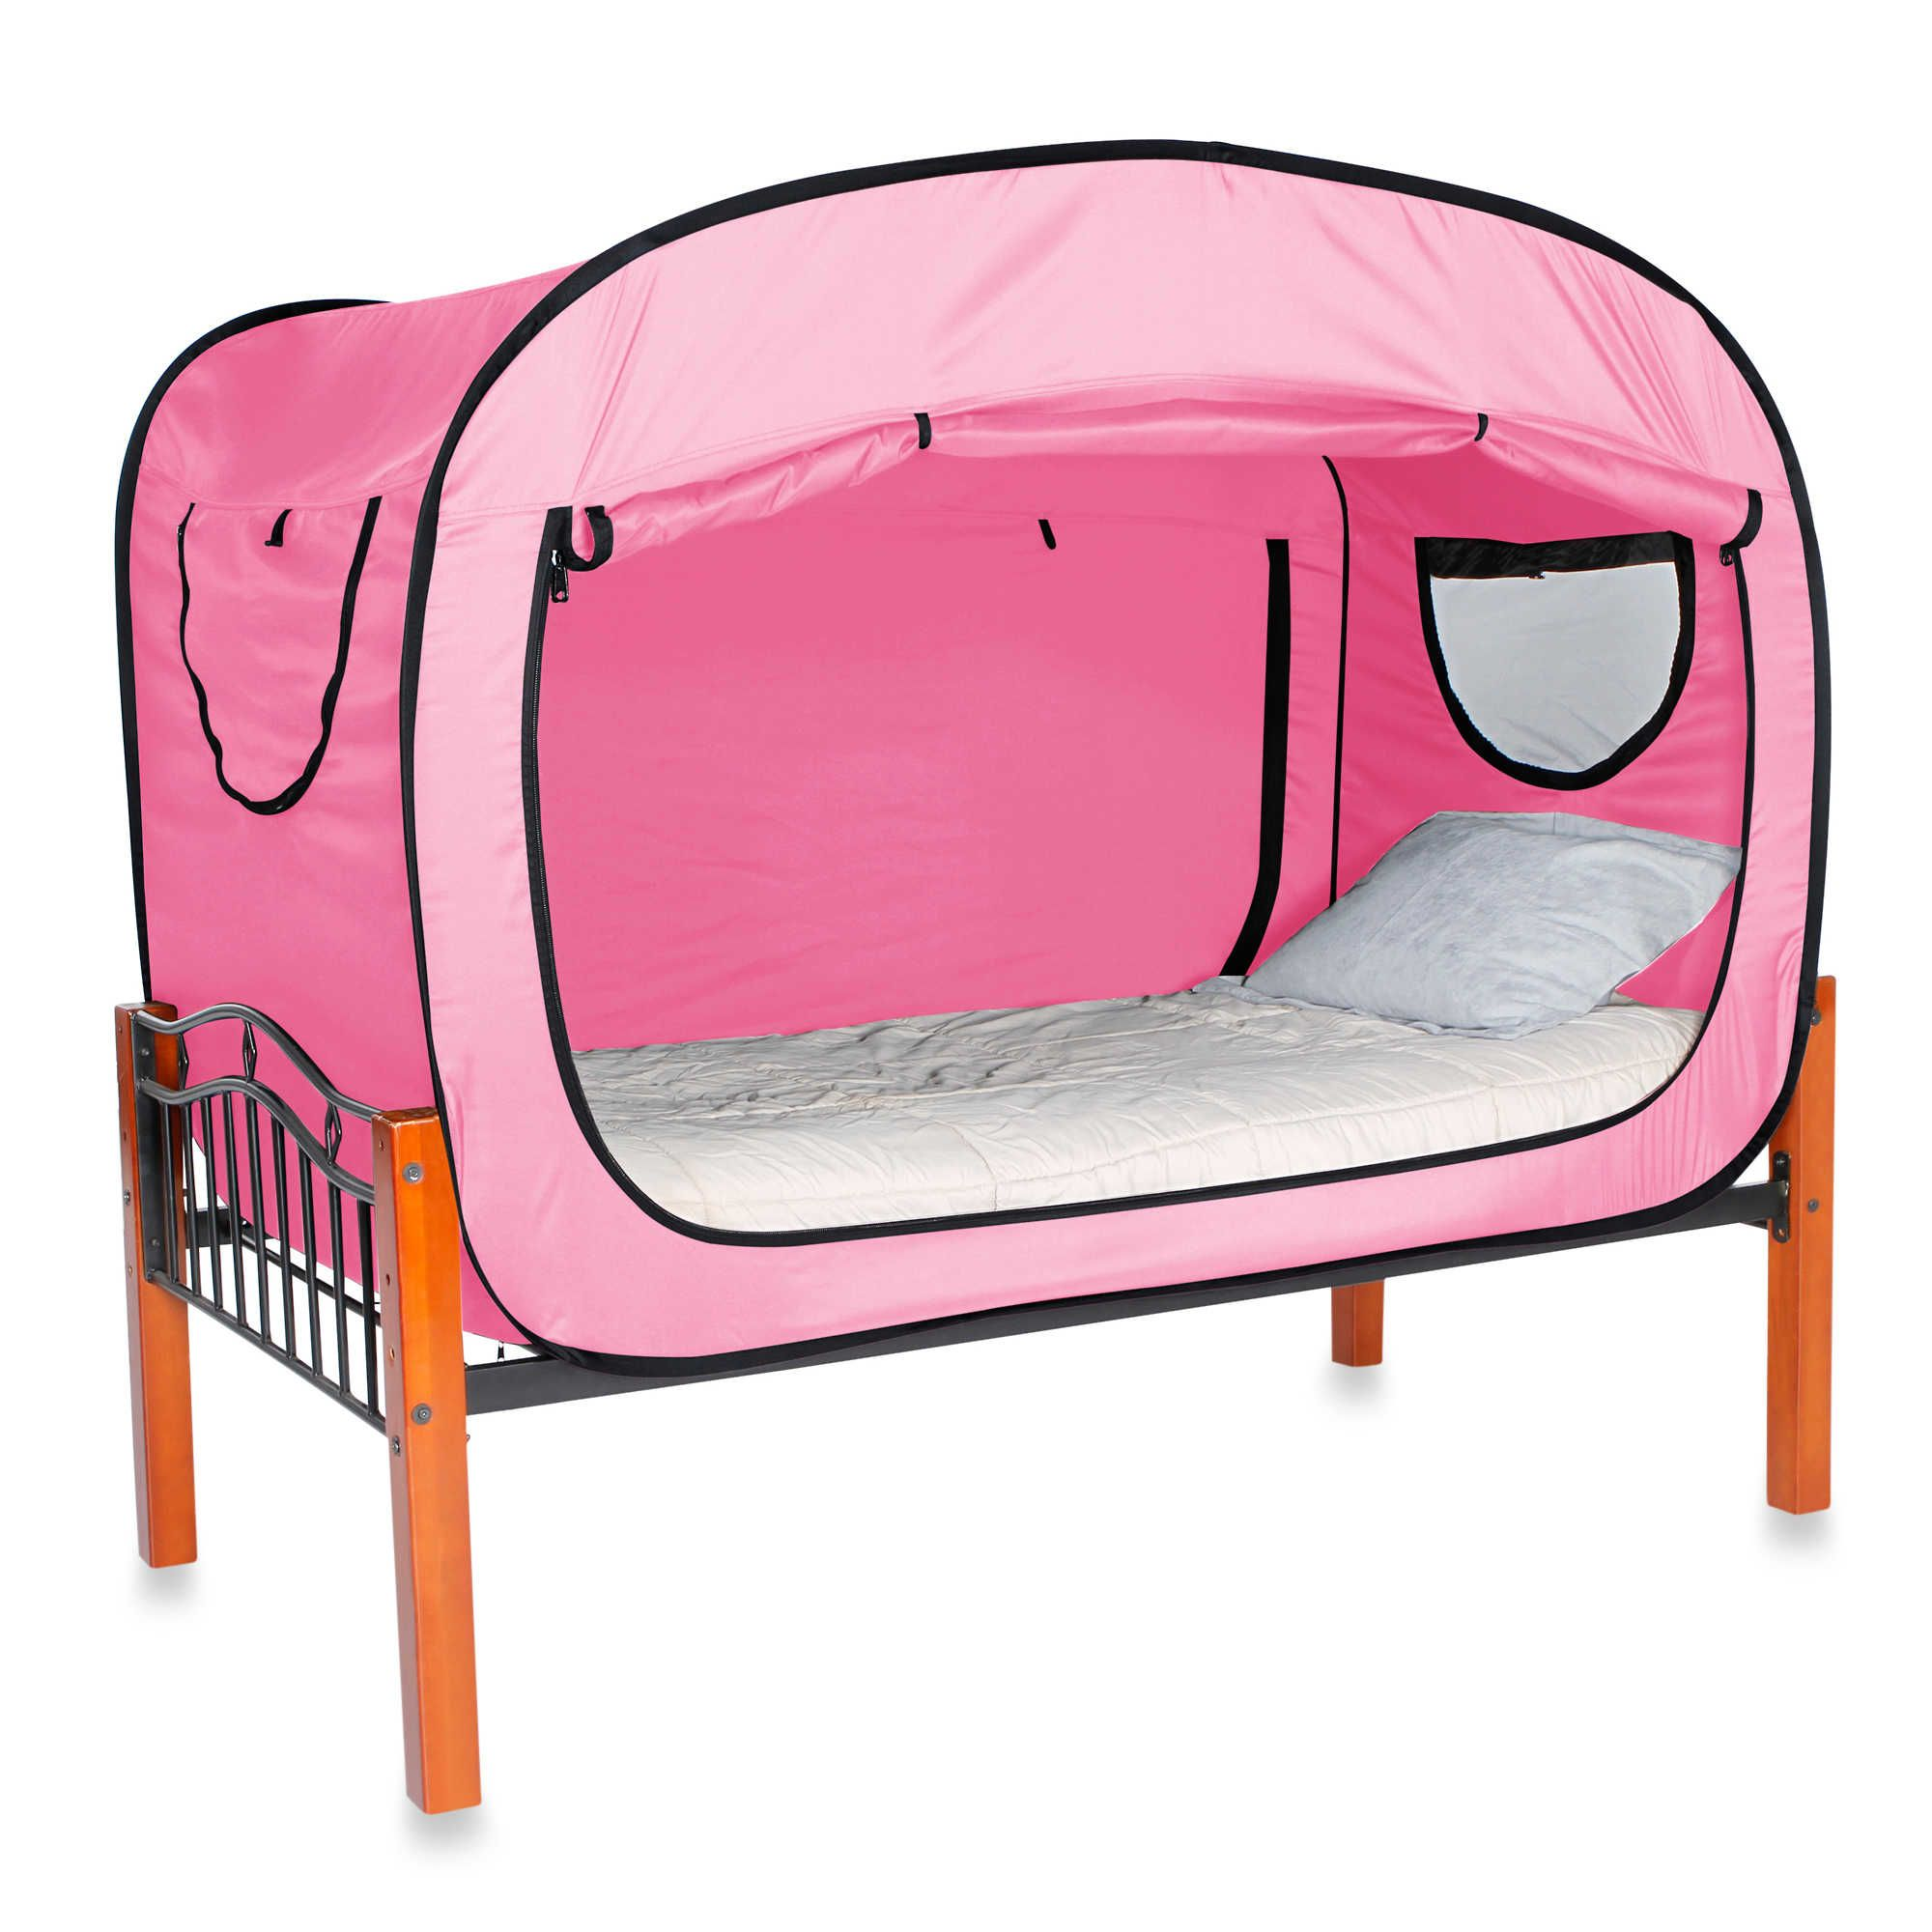 Privacy Pop Bed Tent  sc 1 st  Pinterest : privacy tents - memphite.com